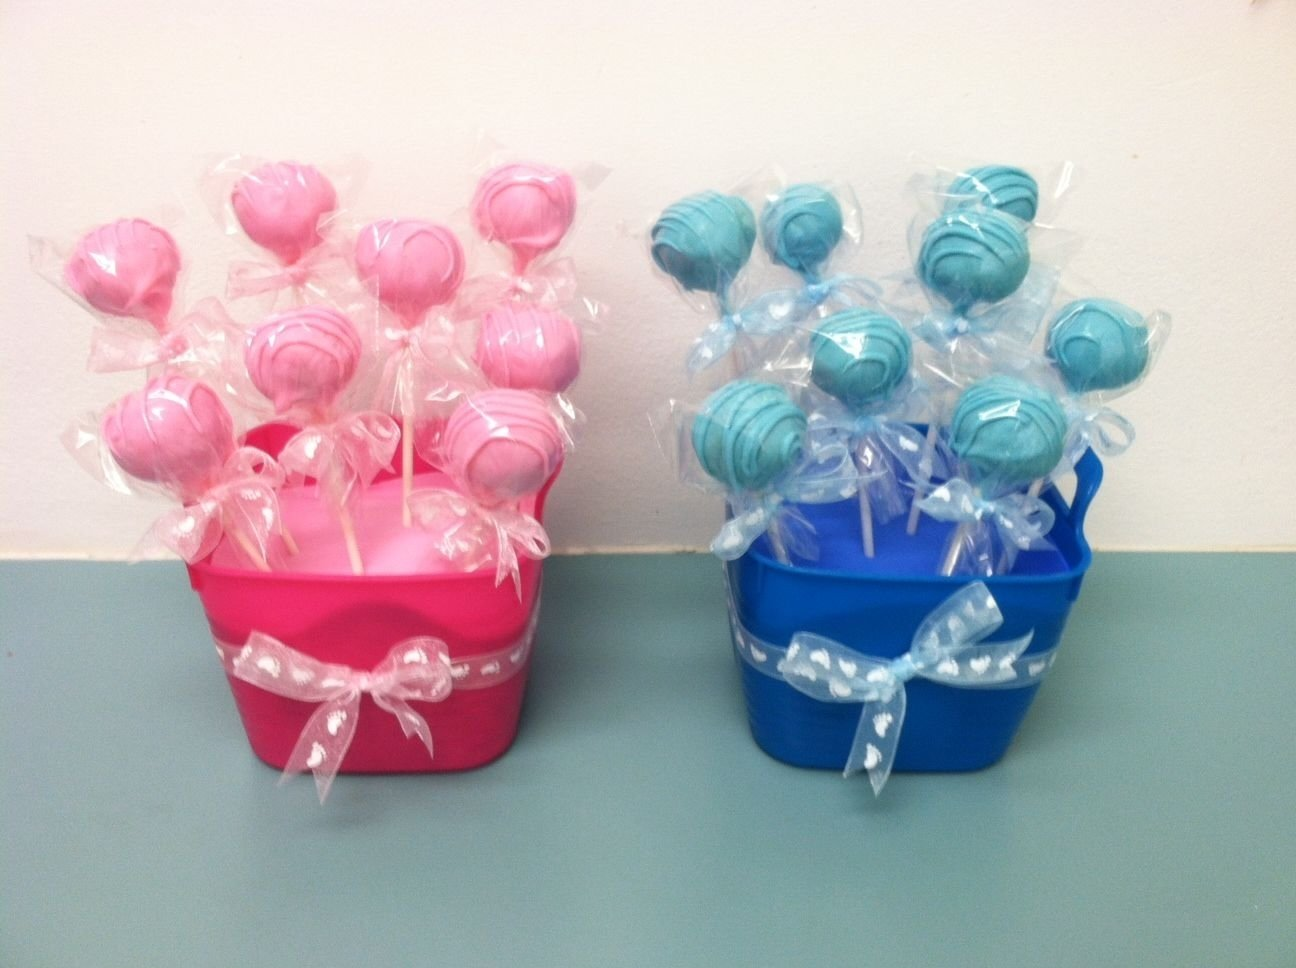 10 Nice Baby Shower Cake Pop Ideas easy baby shower food ideas cp august 8 2012 full size is 1 2021